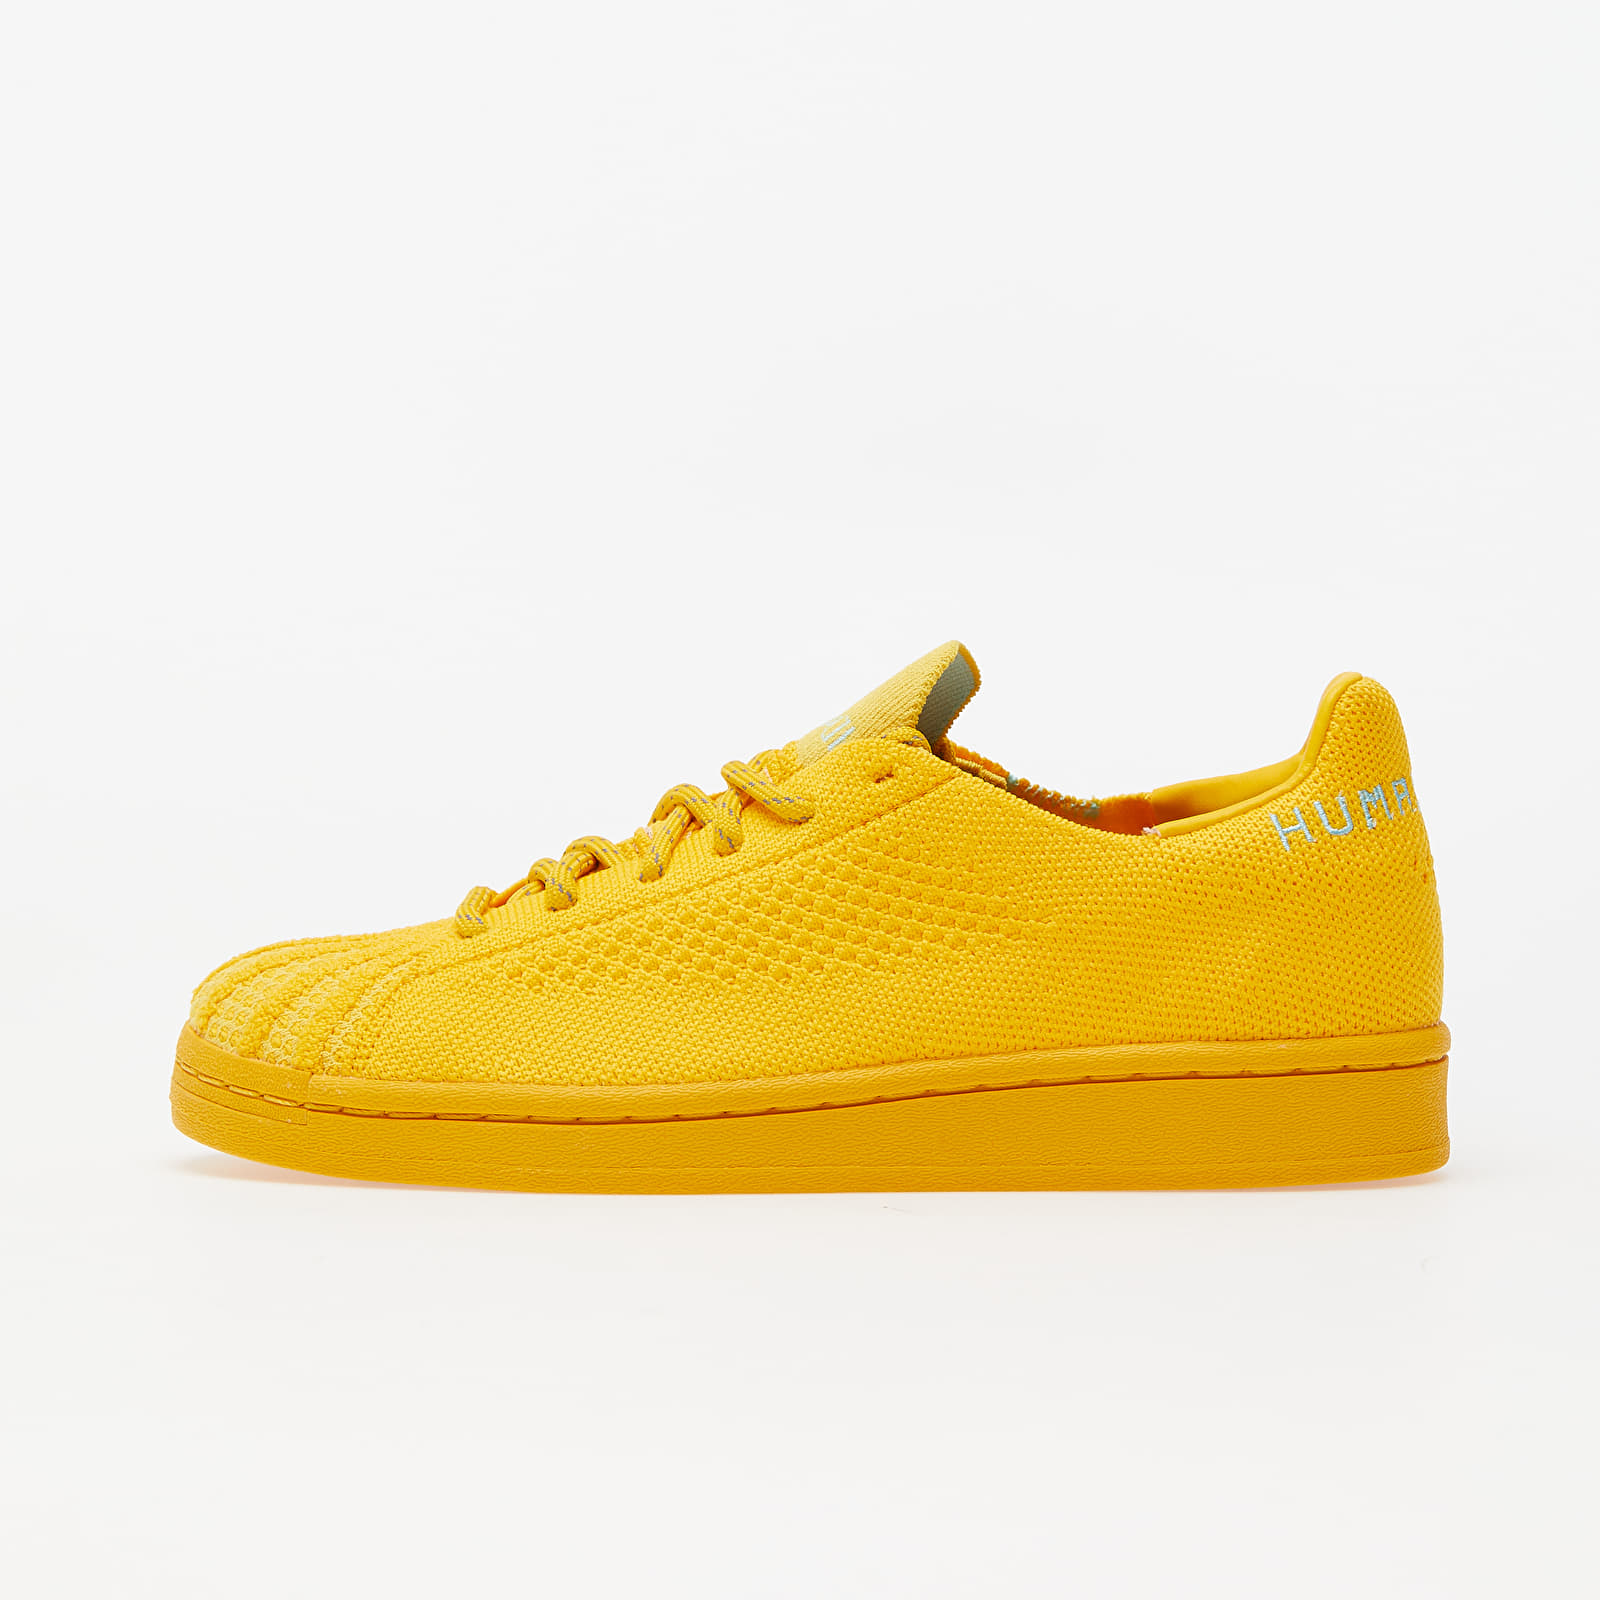 adidas x Pharrel Williams Superstar Pk Bold Gold/ Cardboard/ Clear Aqua S42930